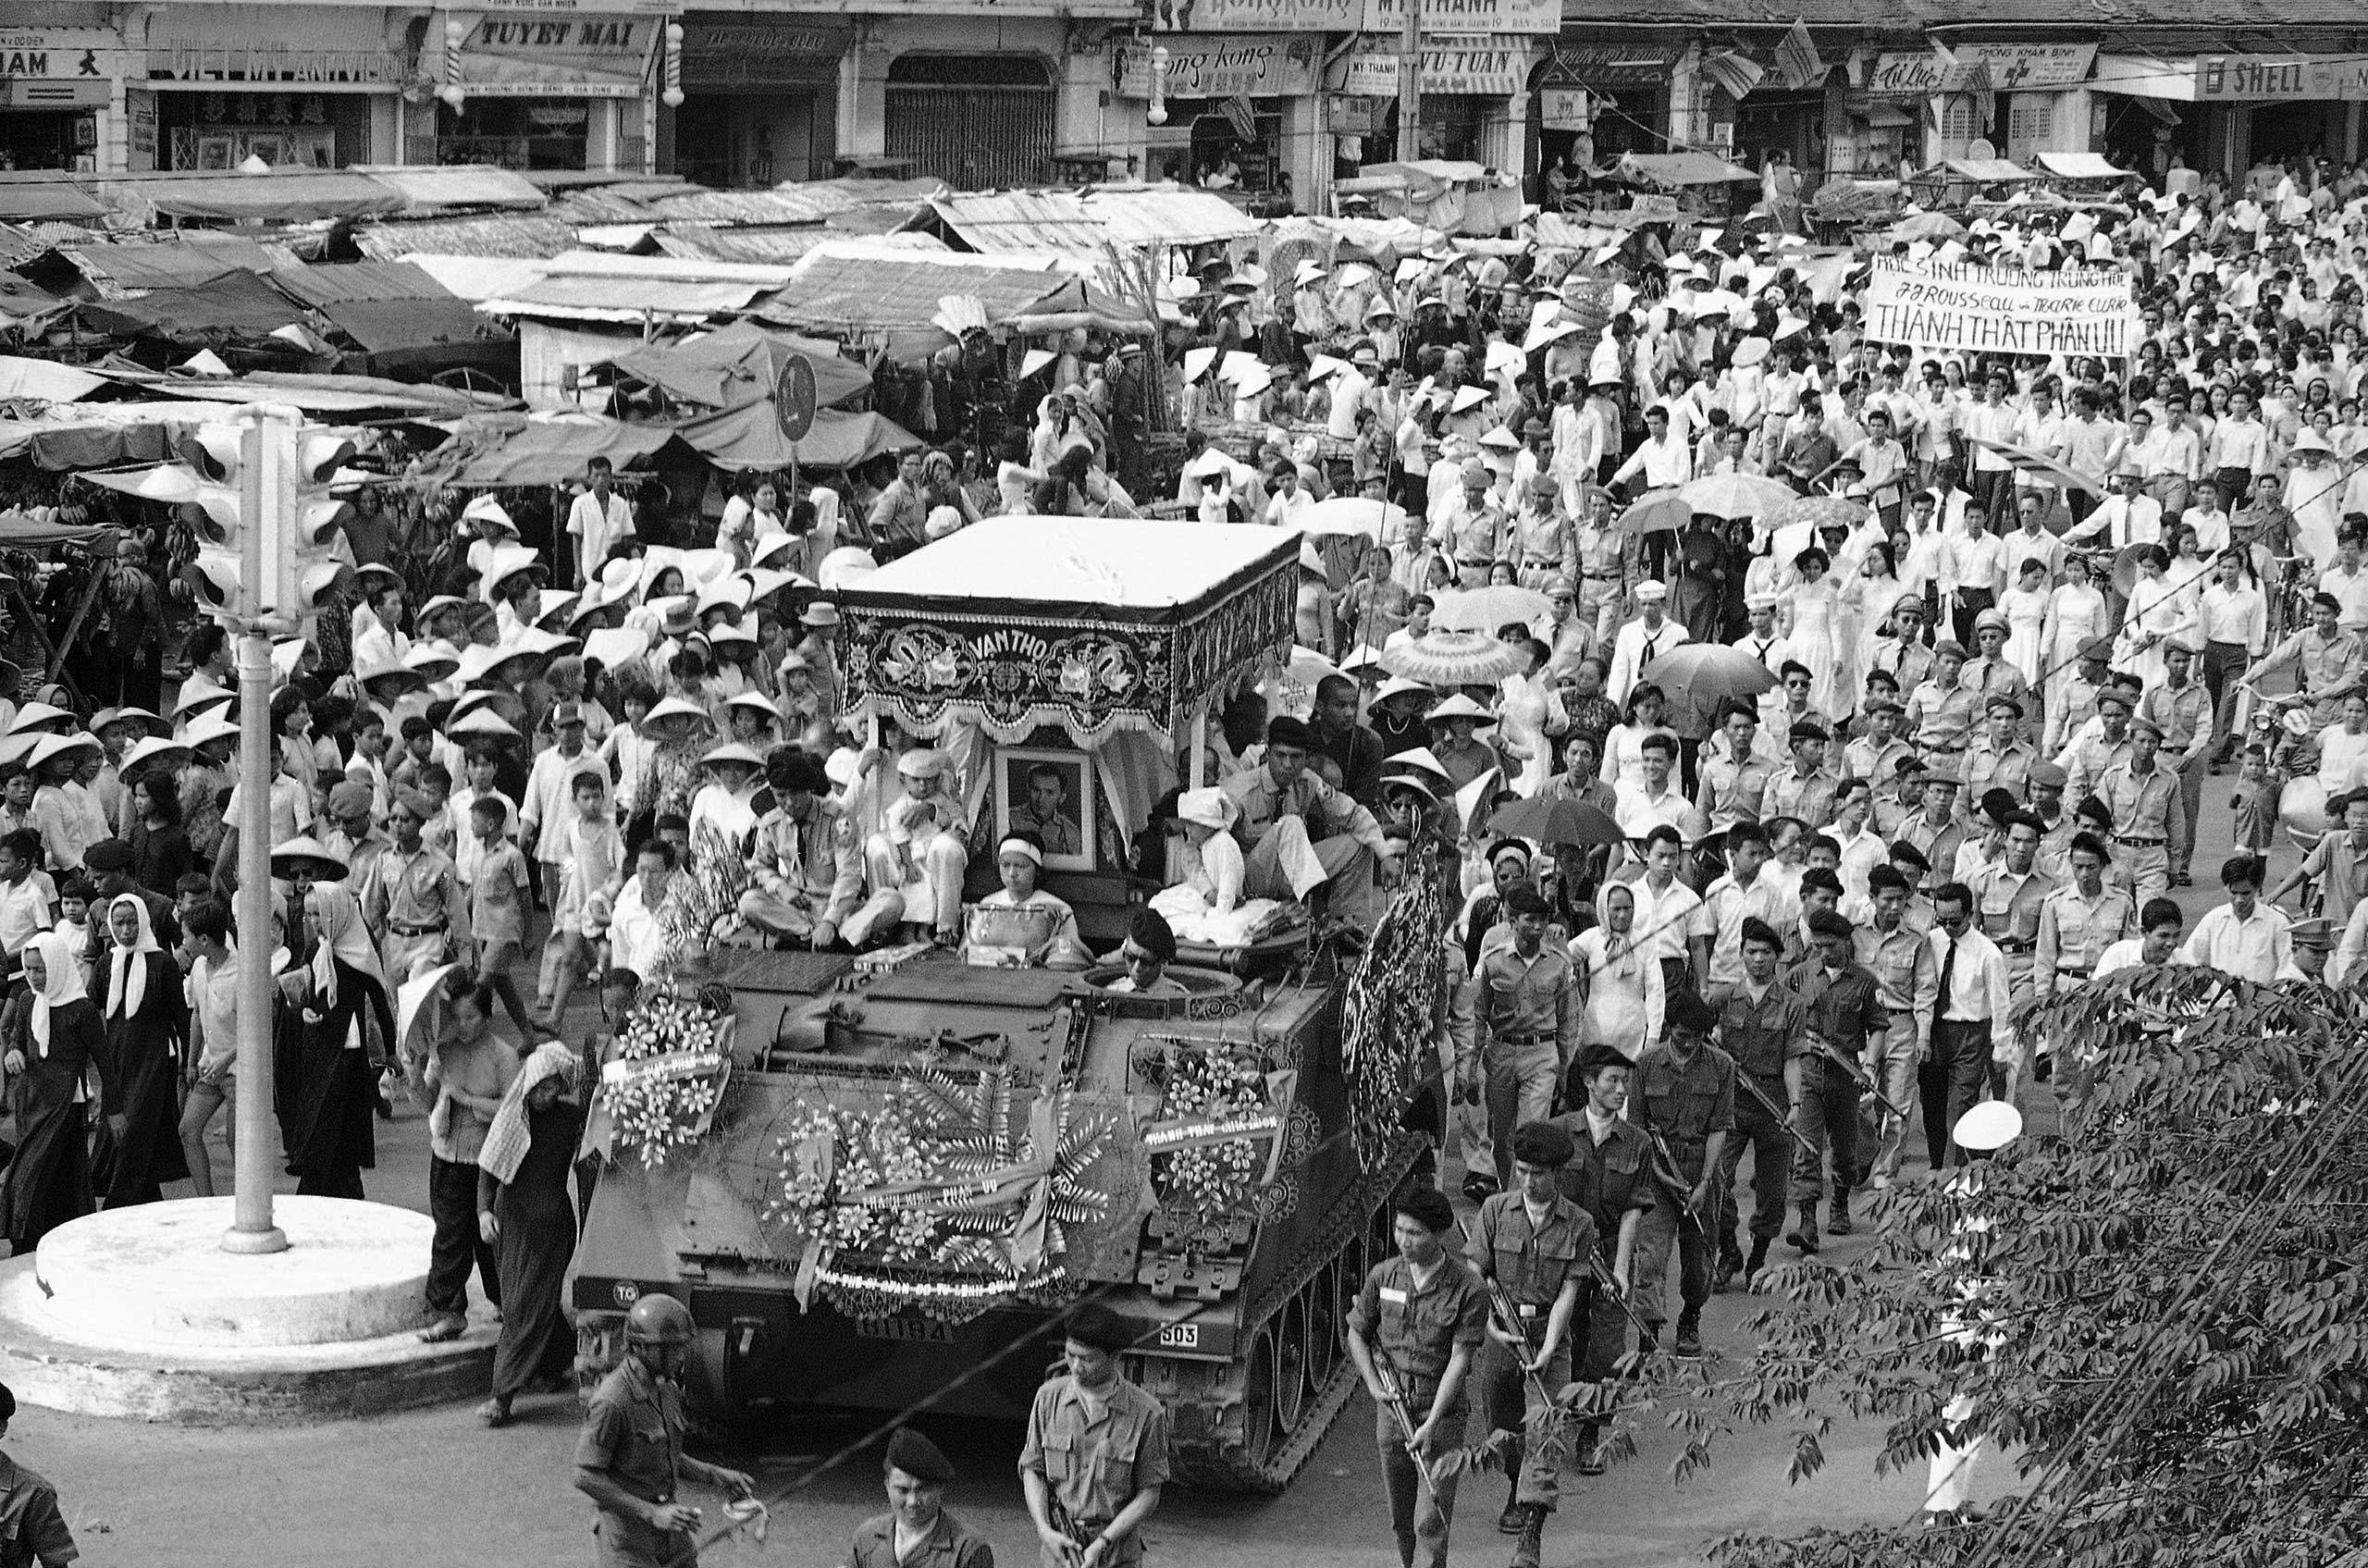 The body of a South Vietnamese captain is carried on an army tank surrounded by many soldiers and civilians in a funeral procession on Saigon's main street on Nov. 5, 1963.